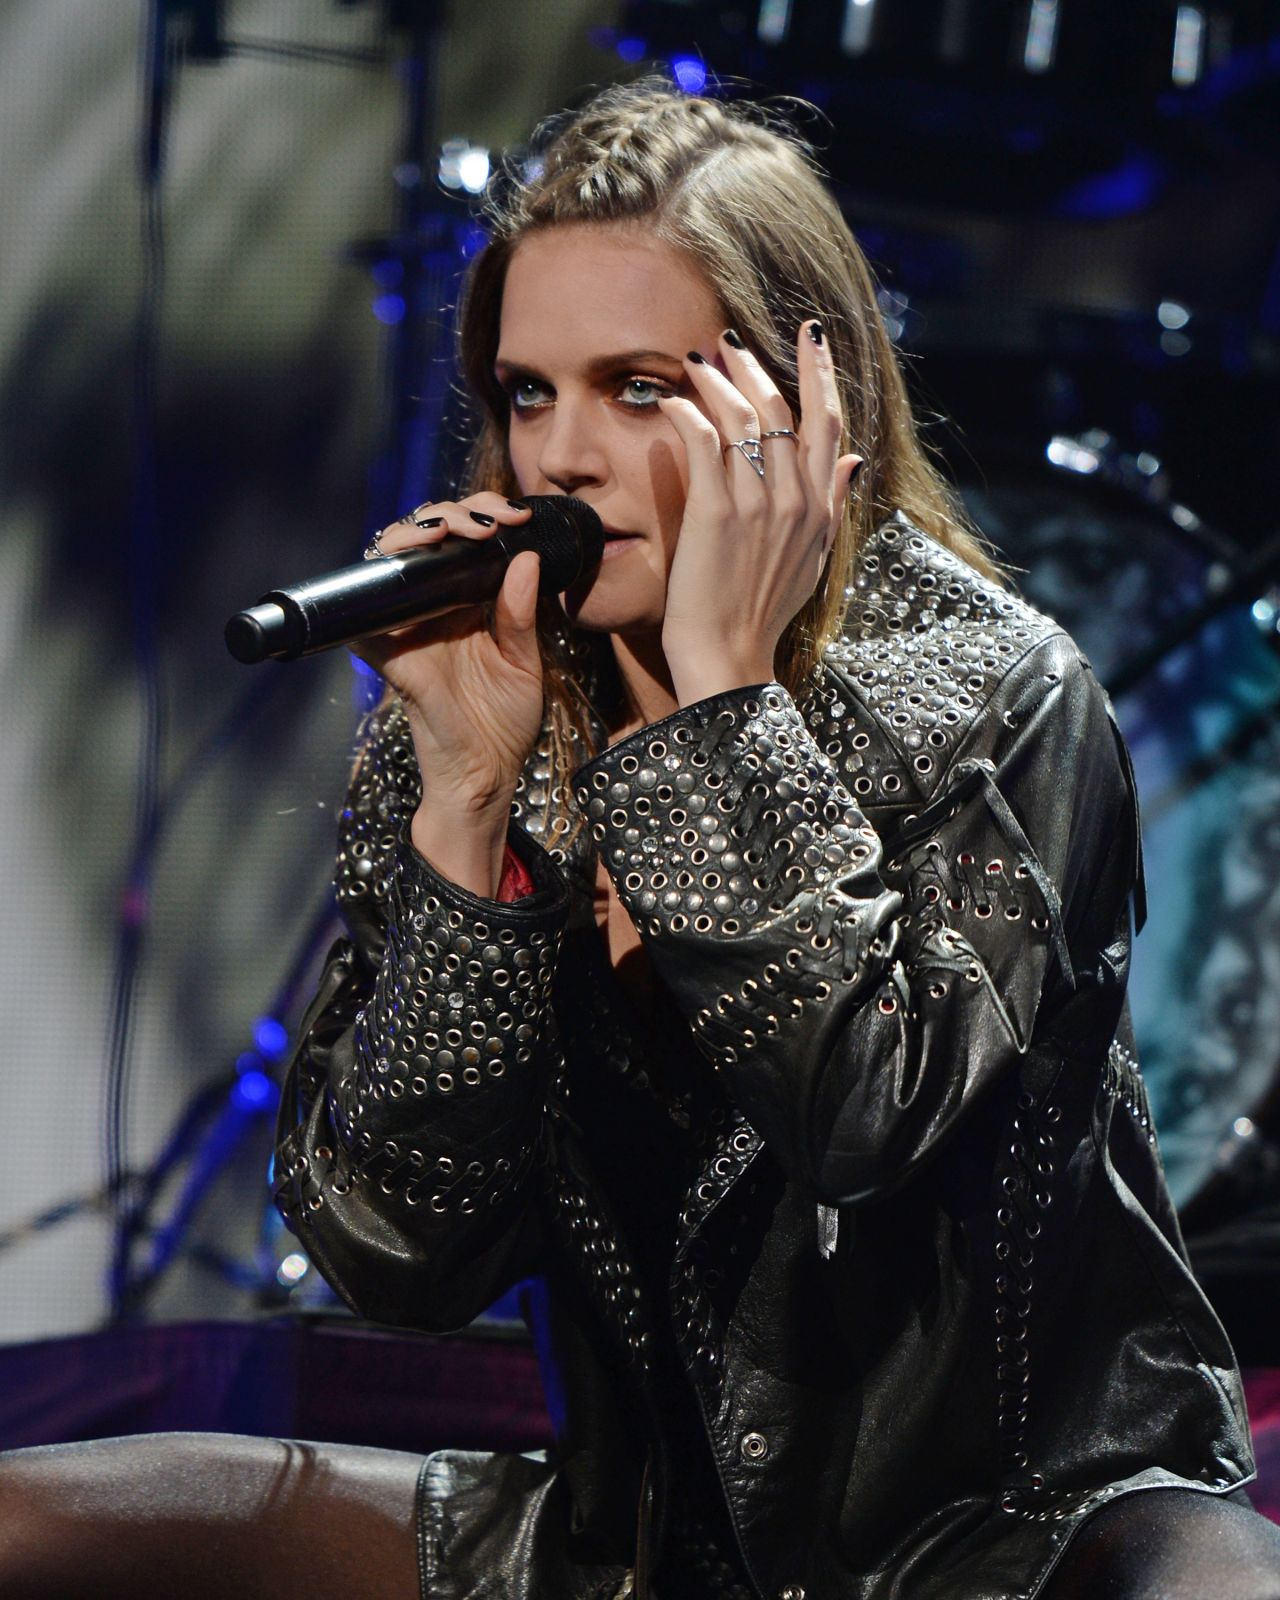 Tove Lo - Performs During the 2015 Y100 Jingle Ball in